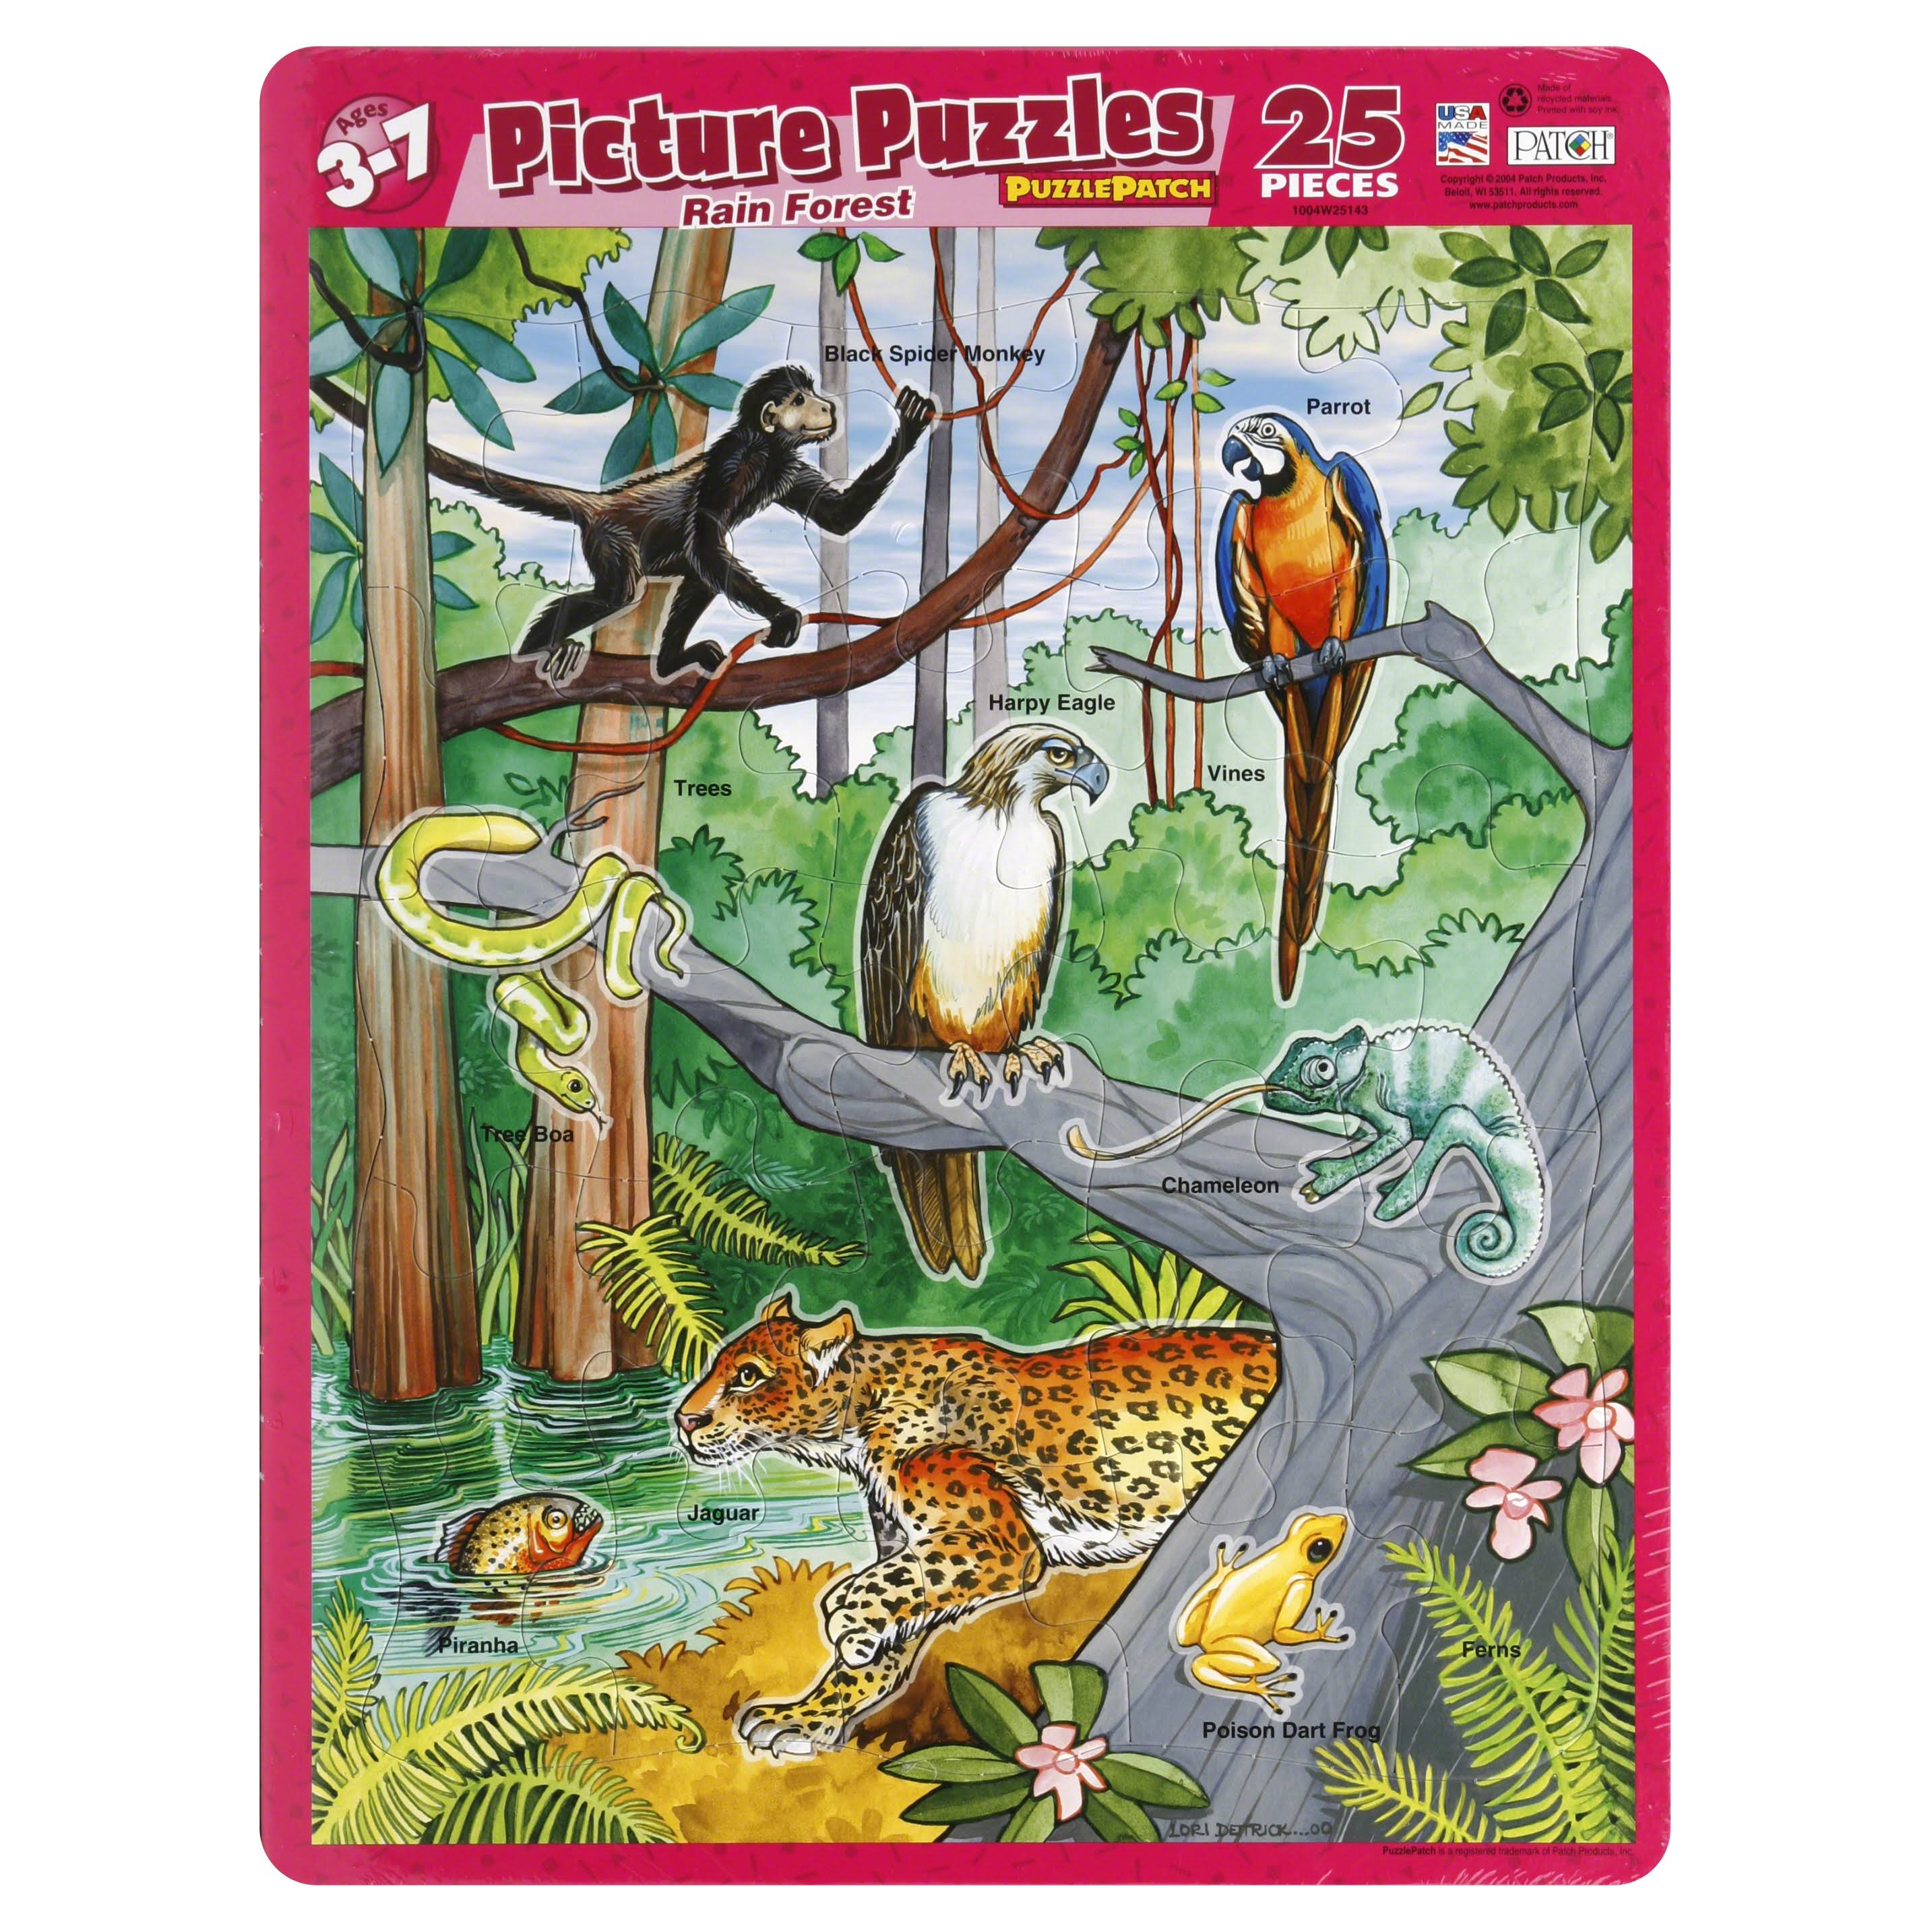 Puzzle Patch 4 Pack Picture Puzzles